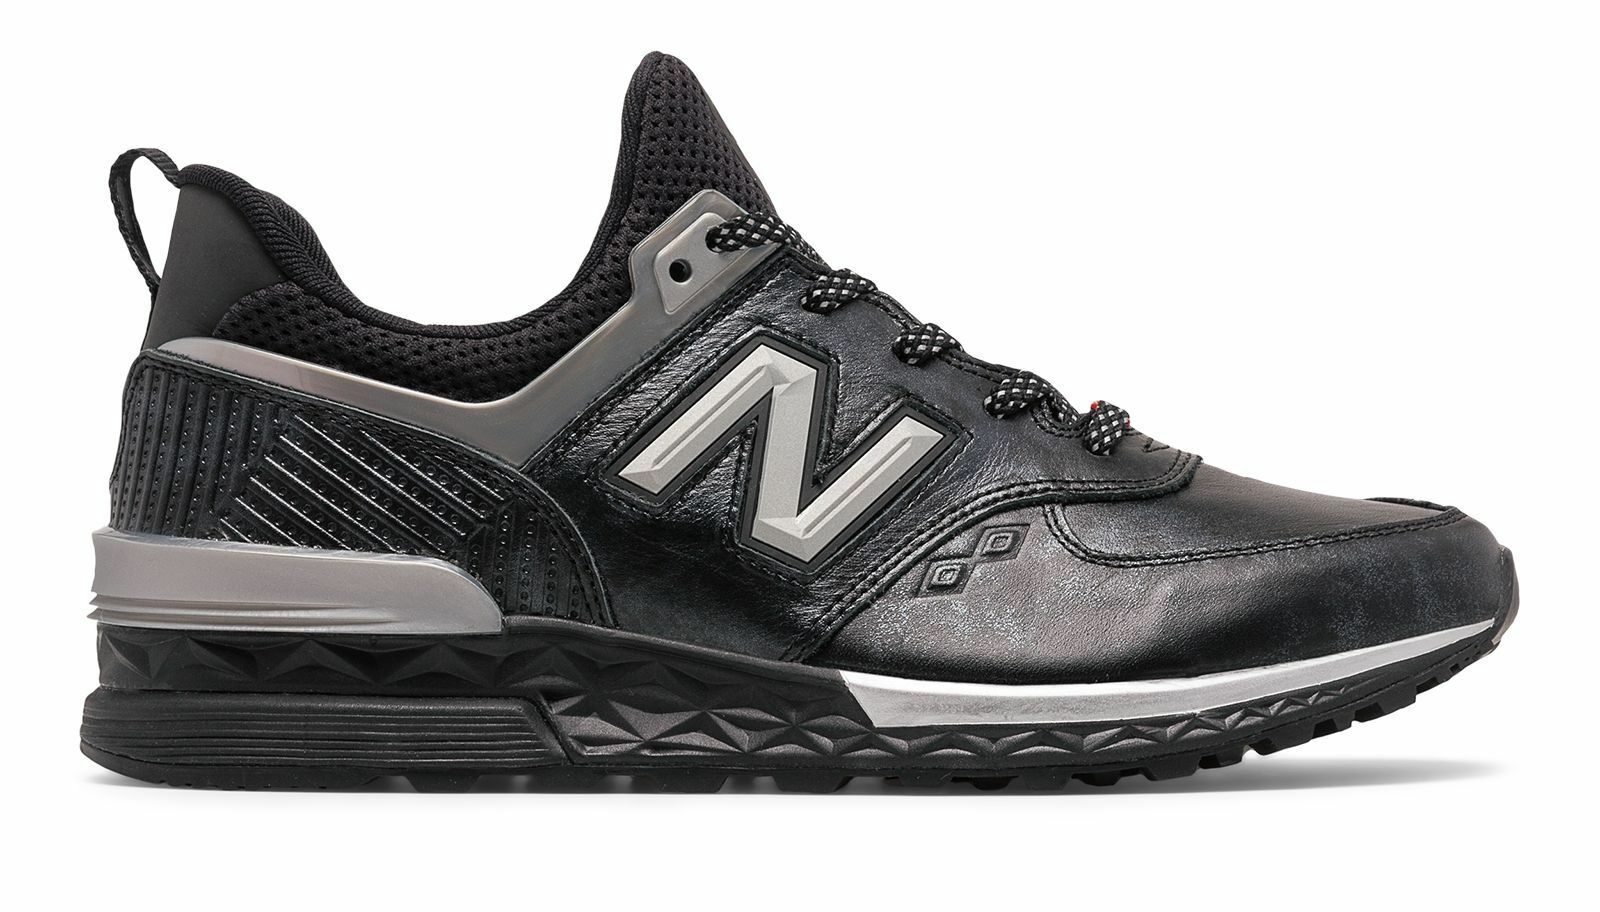 New Balance Men's 574 Sport Black Panther shoes Black with Silver